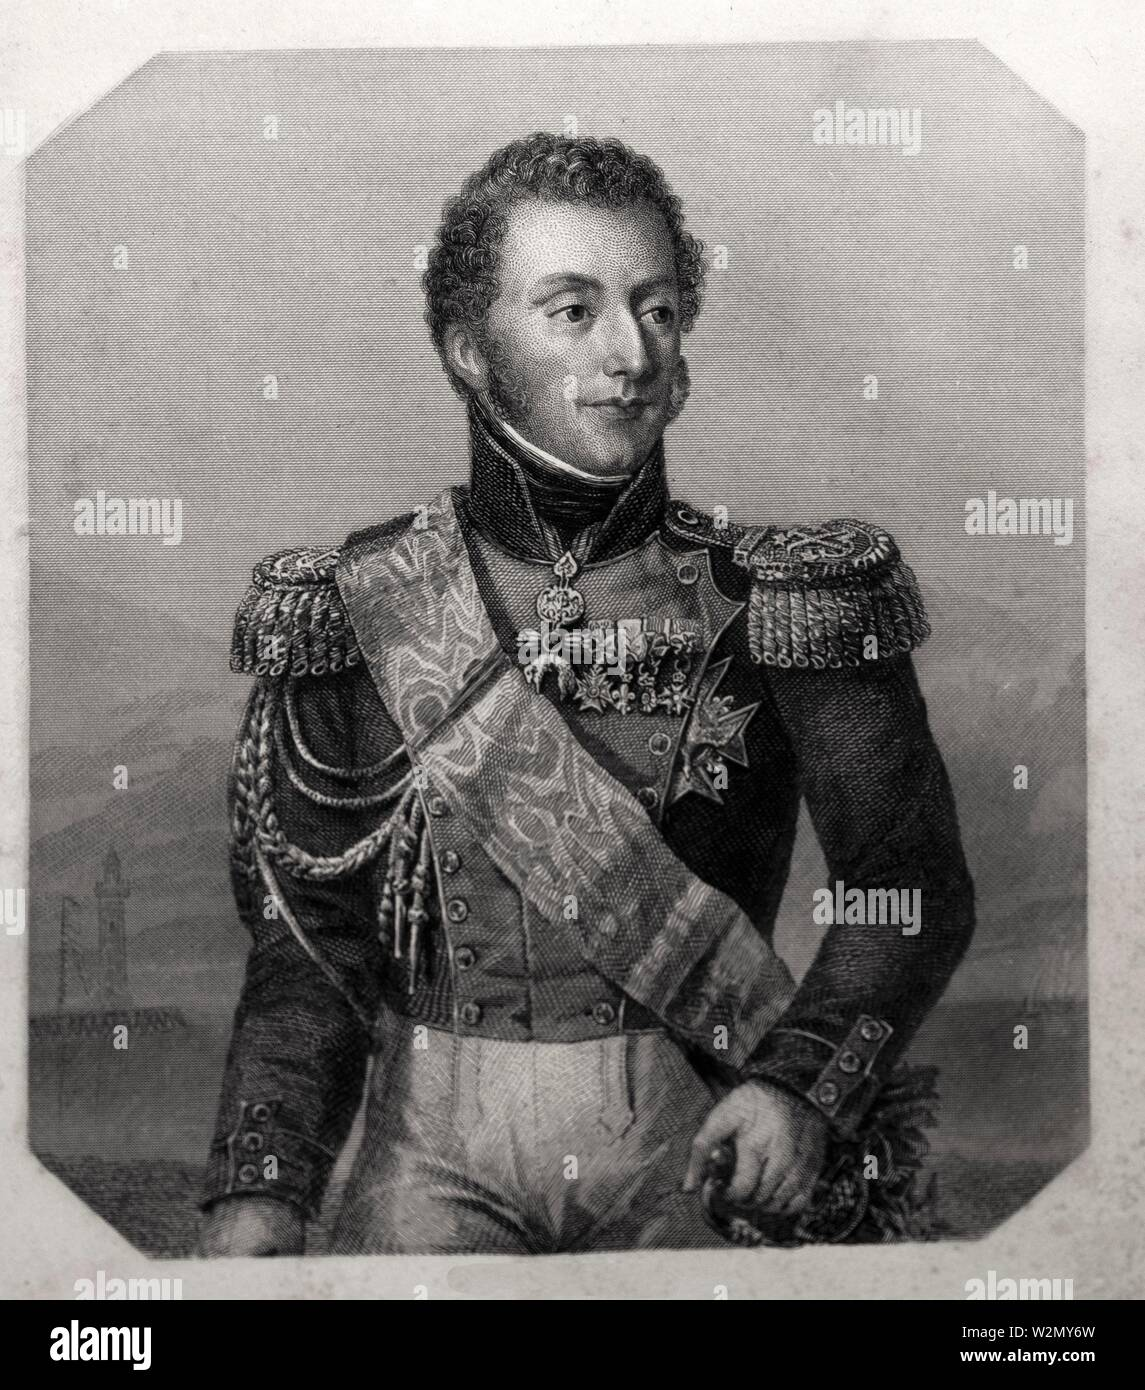 Duc d´Angoulème -. Charles X (Charles Philippe; 9 October 1757-6 November 1836) was King of France from 16 September 1824 until 2 August 1830. For - Stock Image